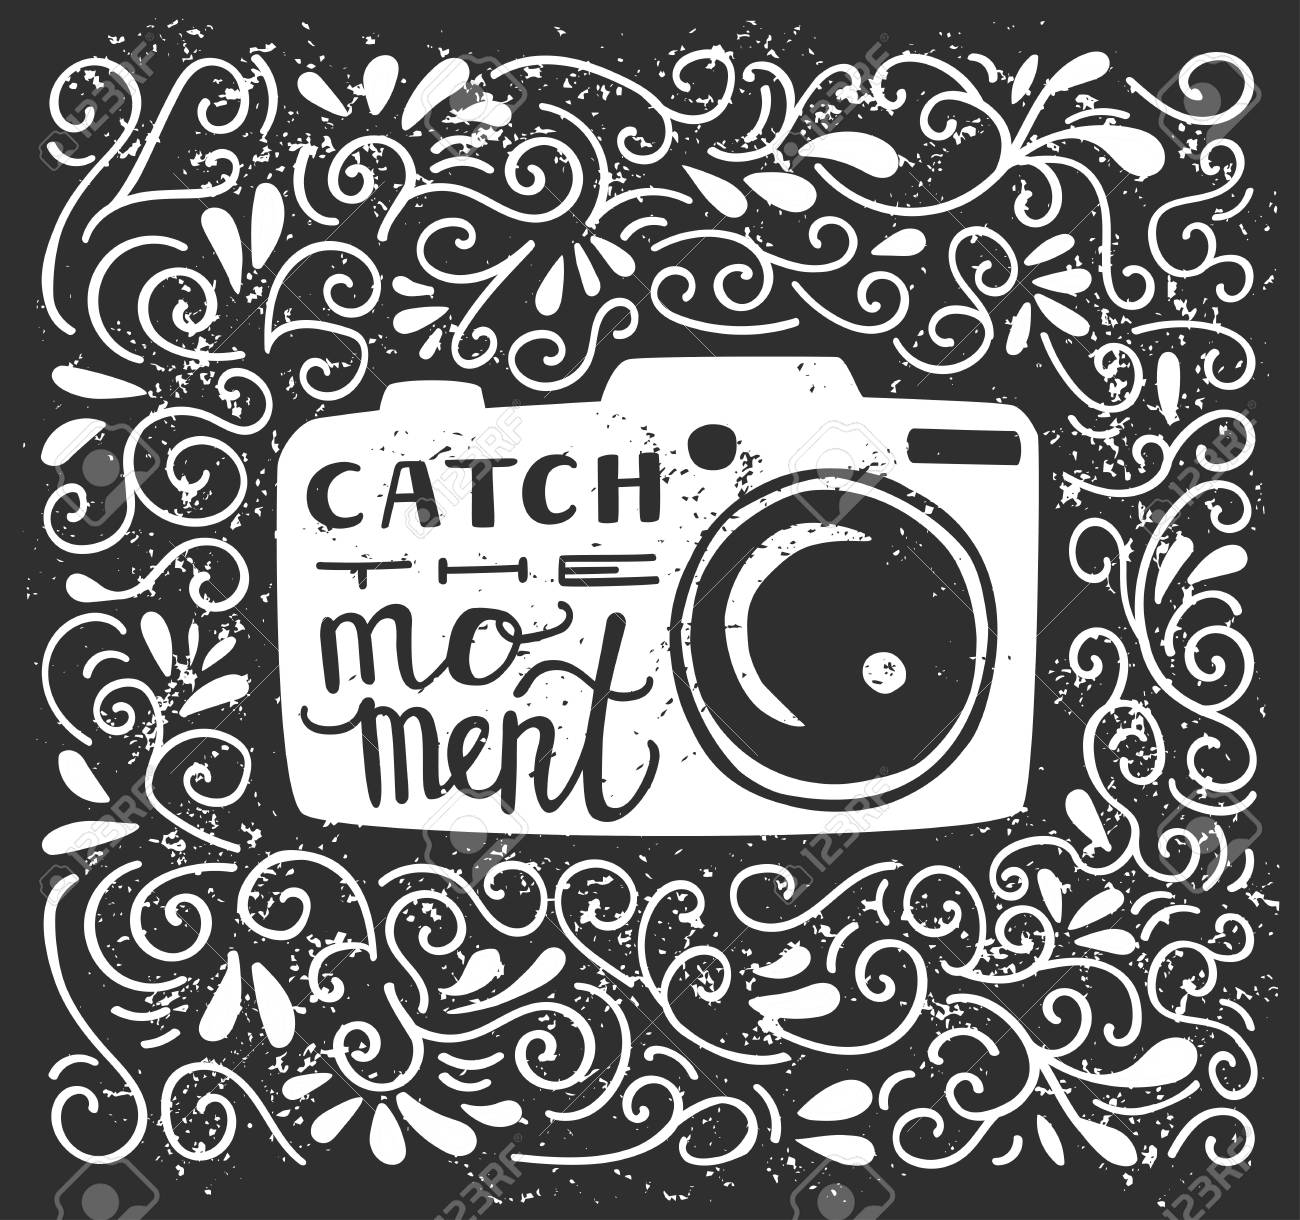 Vector vector illustration with lettering catch the moment white photo camera silhouette hand written phrase and doodle swirls on black background with